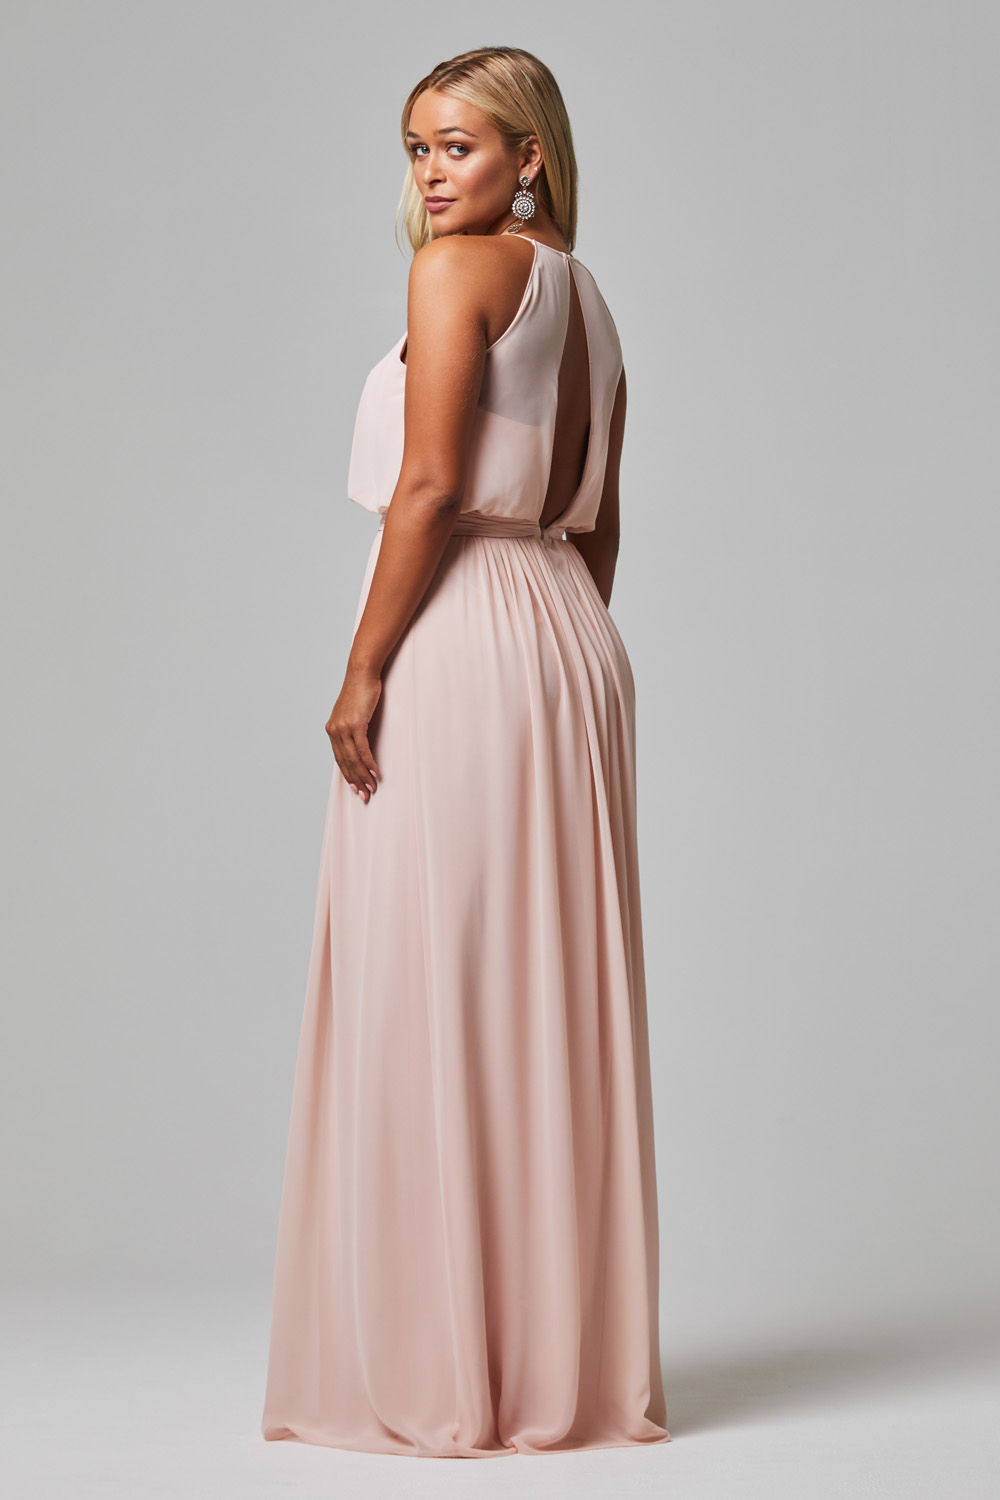 TO822-SYLVIA-PINK-BACK